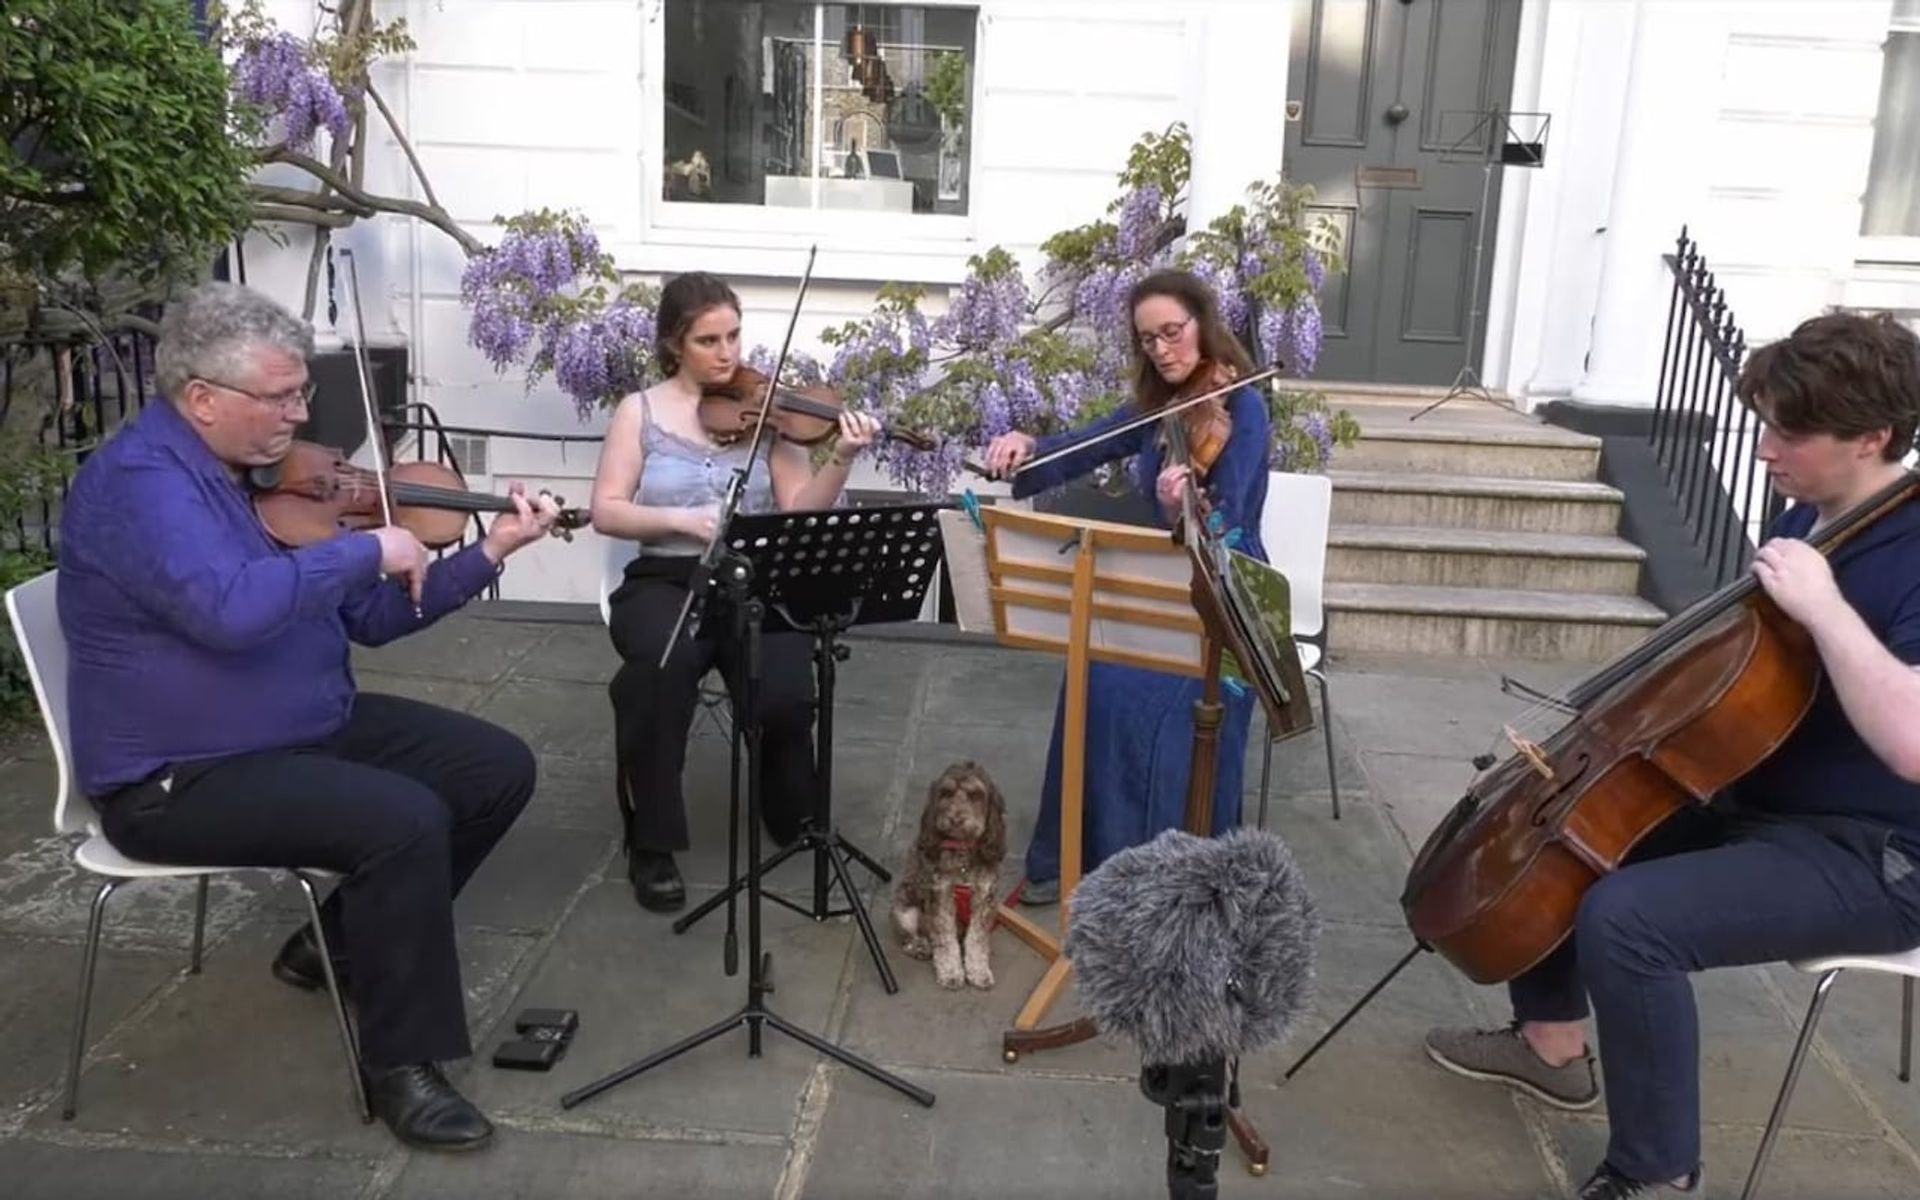 Helena Newman and family have been stopped by police from playing concerts to their neighbours. The dog is not thought to have been involved © Rafael Todes